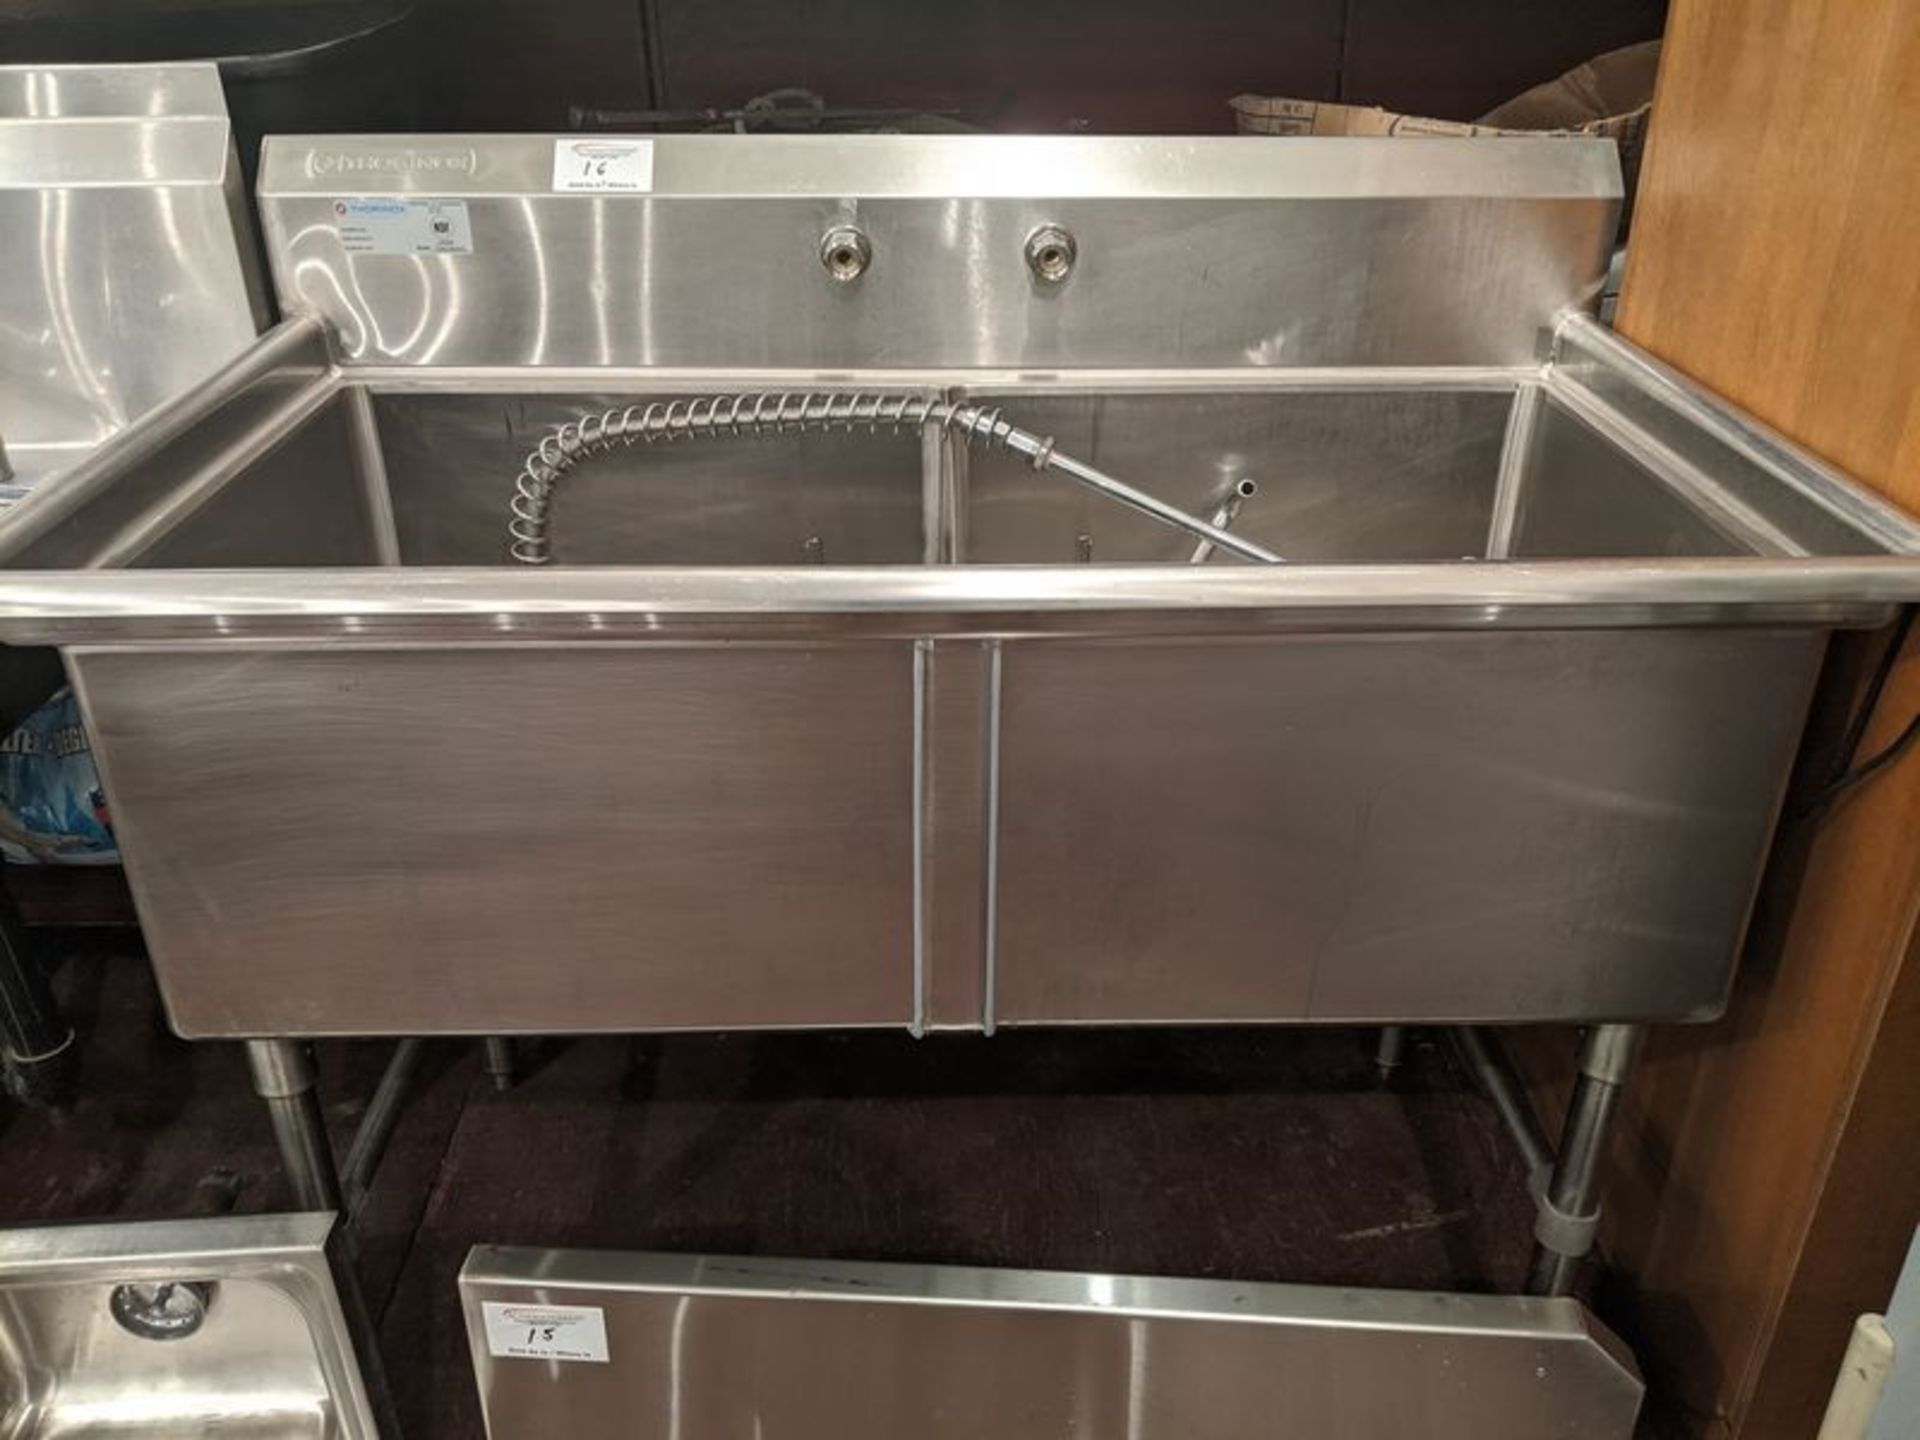 Lot 16 - Thorinox 52 in 2 Compartment Sink with Wash Wand